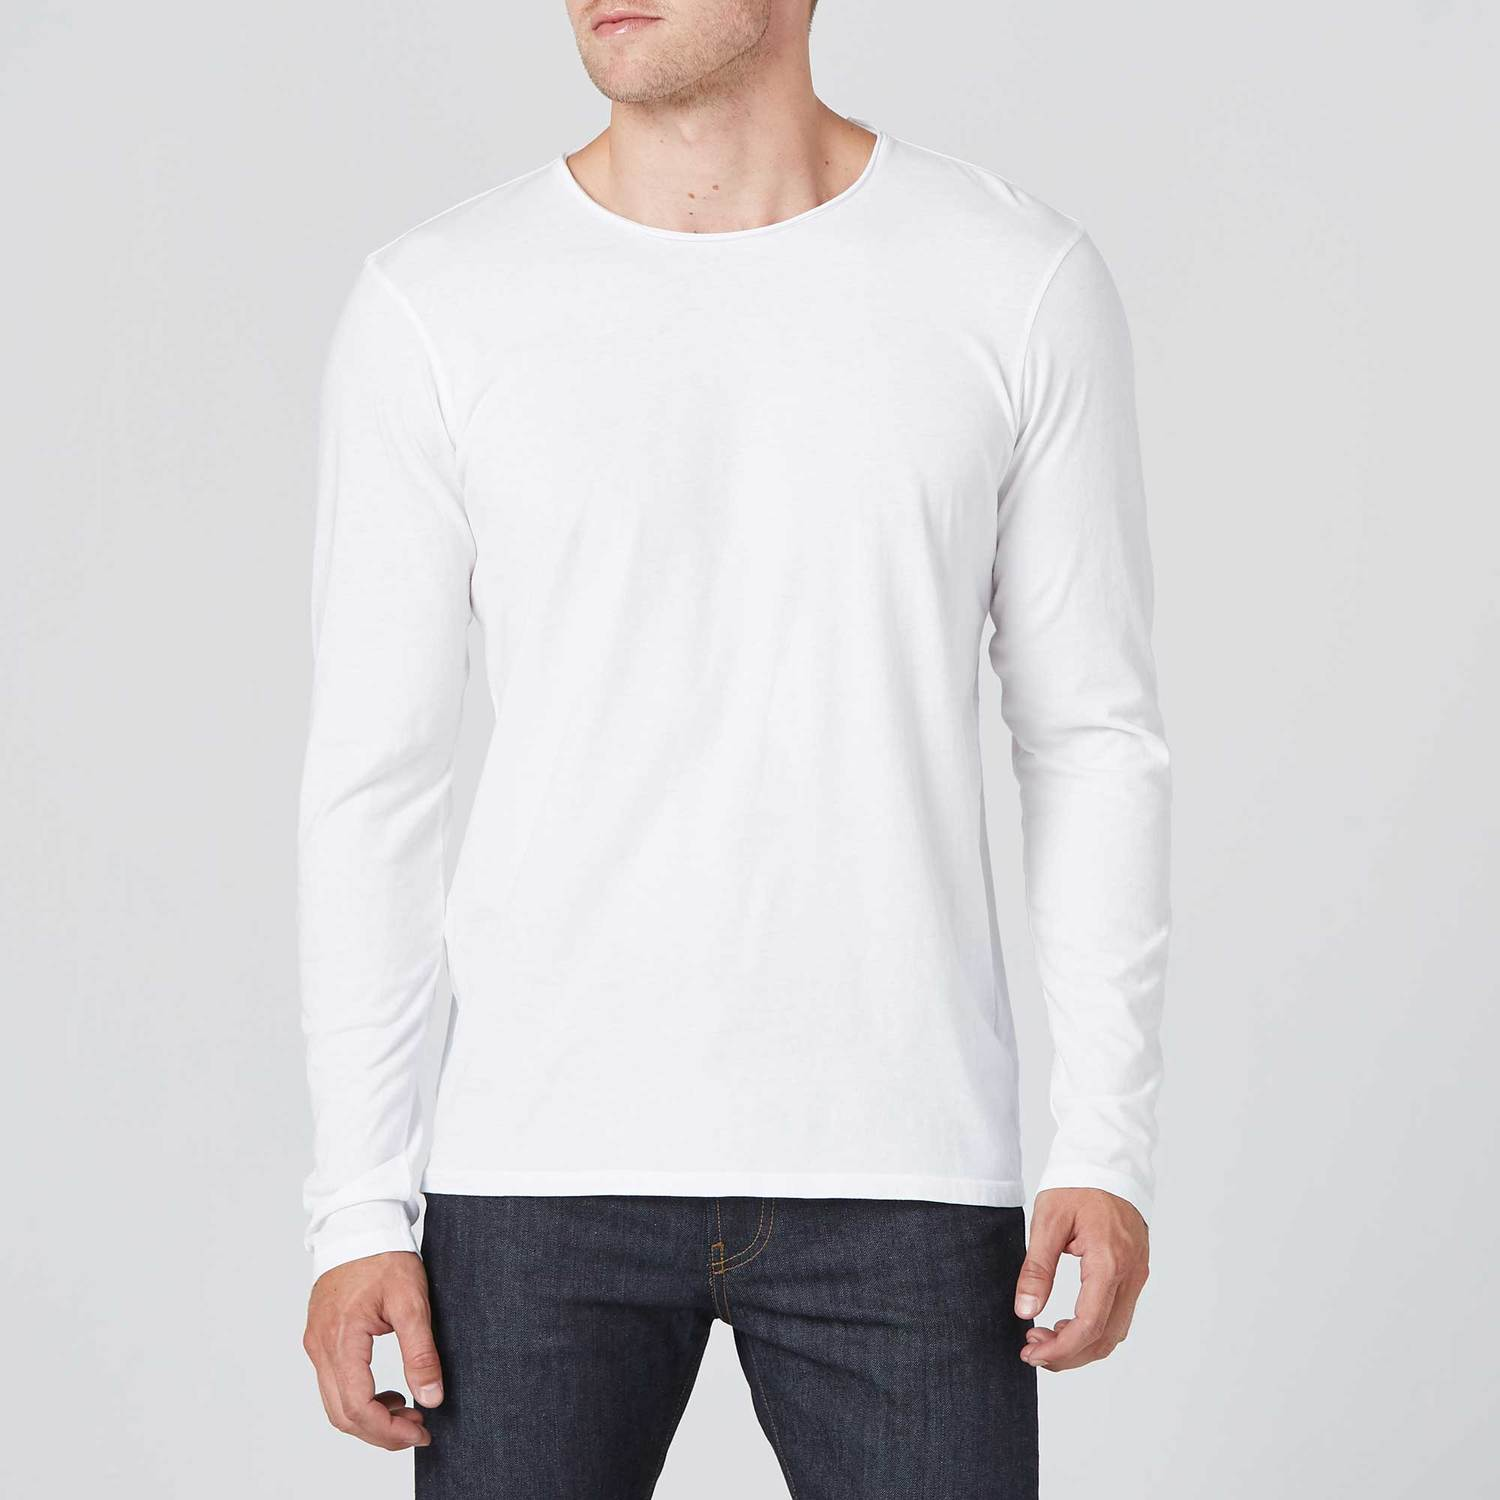 Mens Long Sleeve Modern Crew Neck Tee In White  30  2fe1879abe2